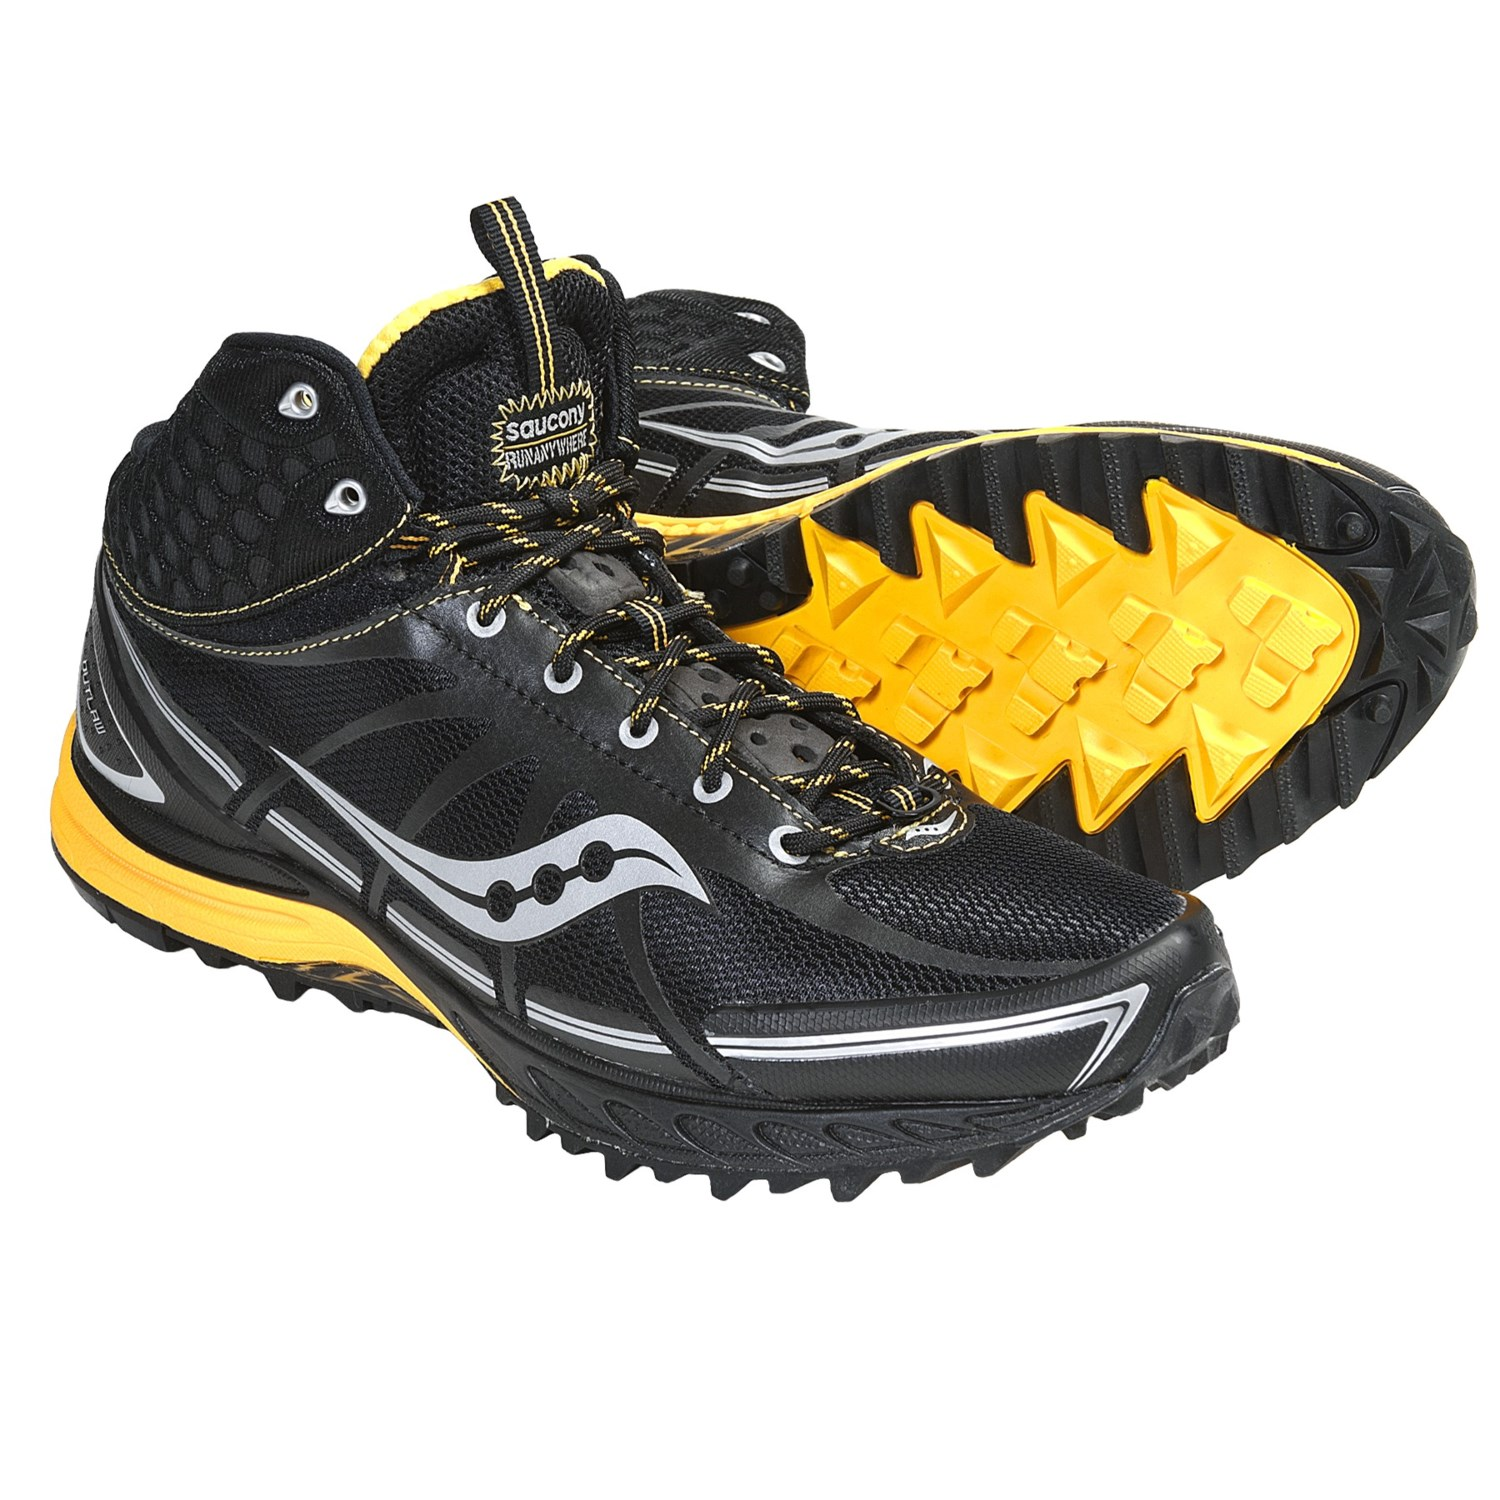 Saucony Stability Trail Running Shoes